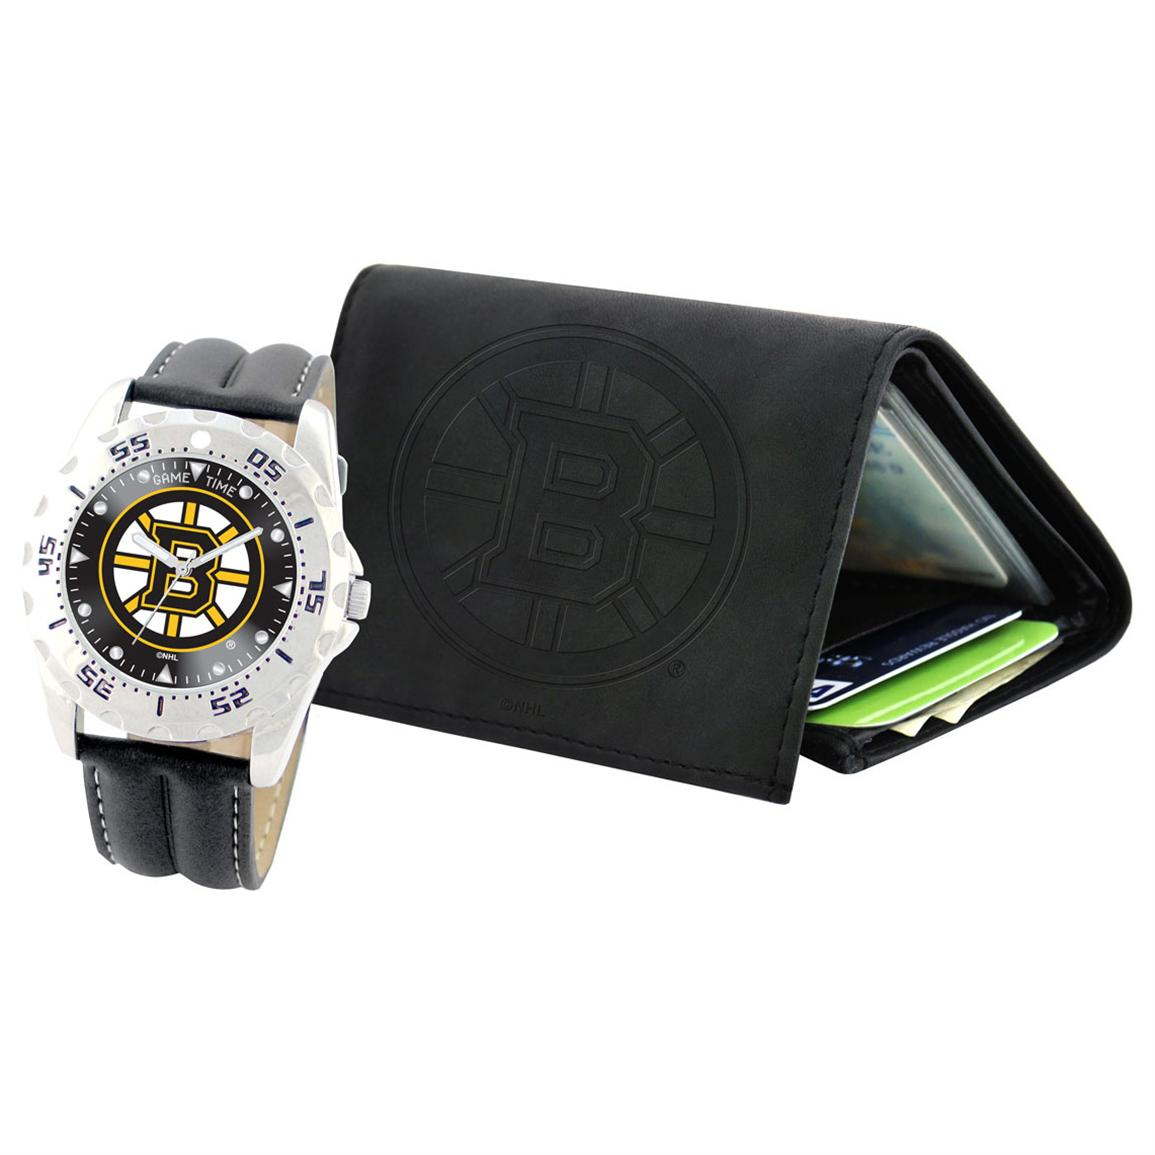 Game Time NHL Watch and Wallet Combo, Boston Bruins